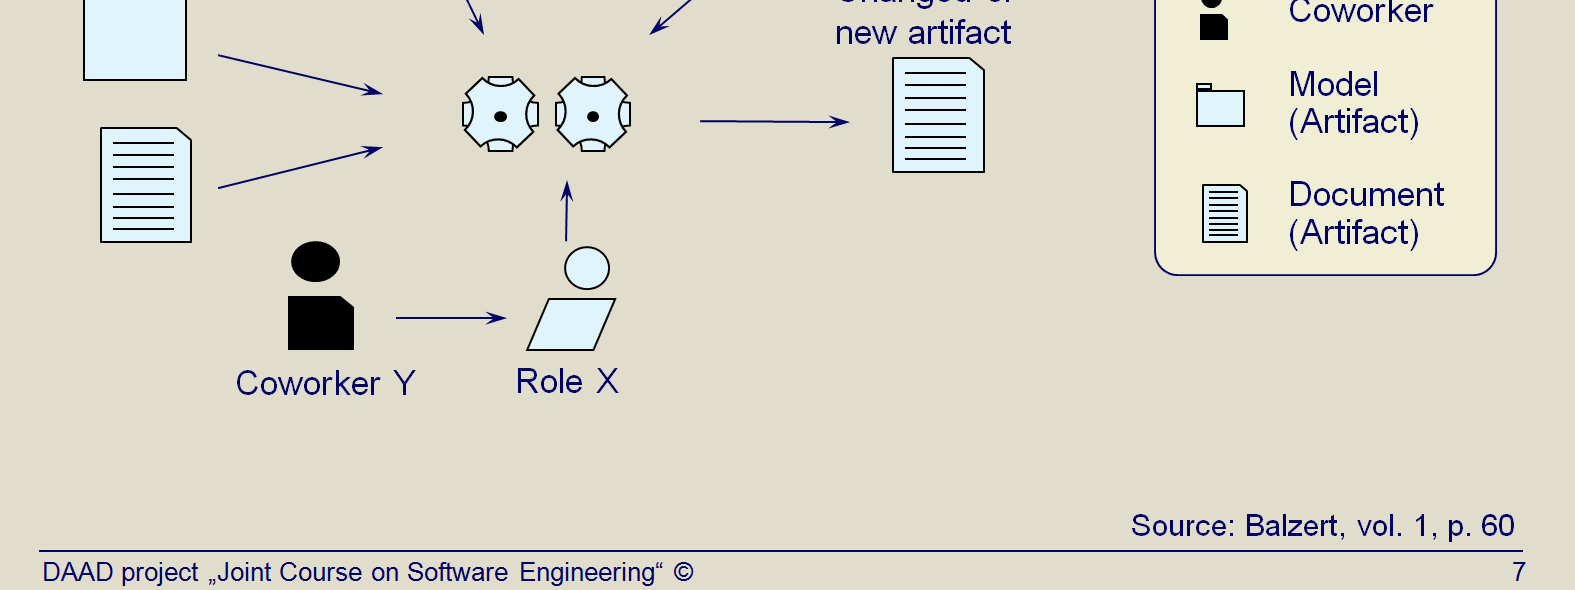 Title: Performing an activity: basic scheme (activity subprocess of a process model) (Topic03 Slide 7).